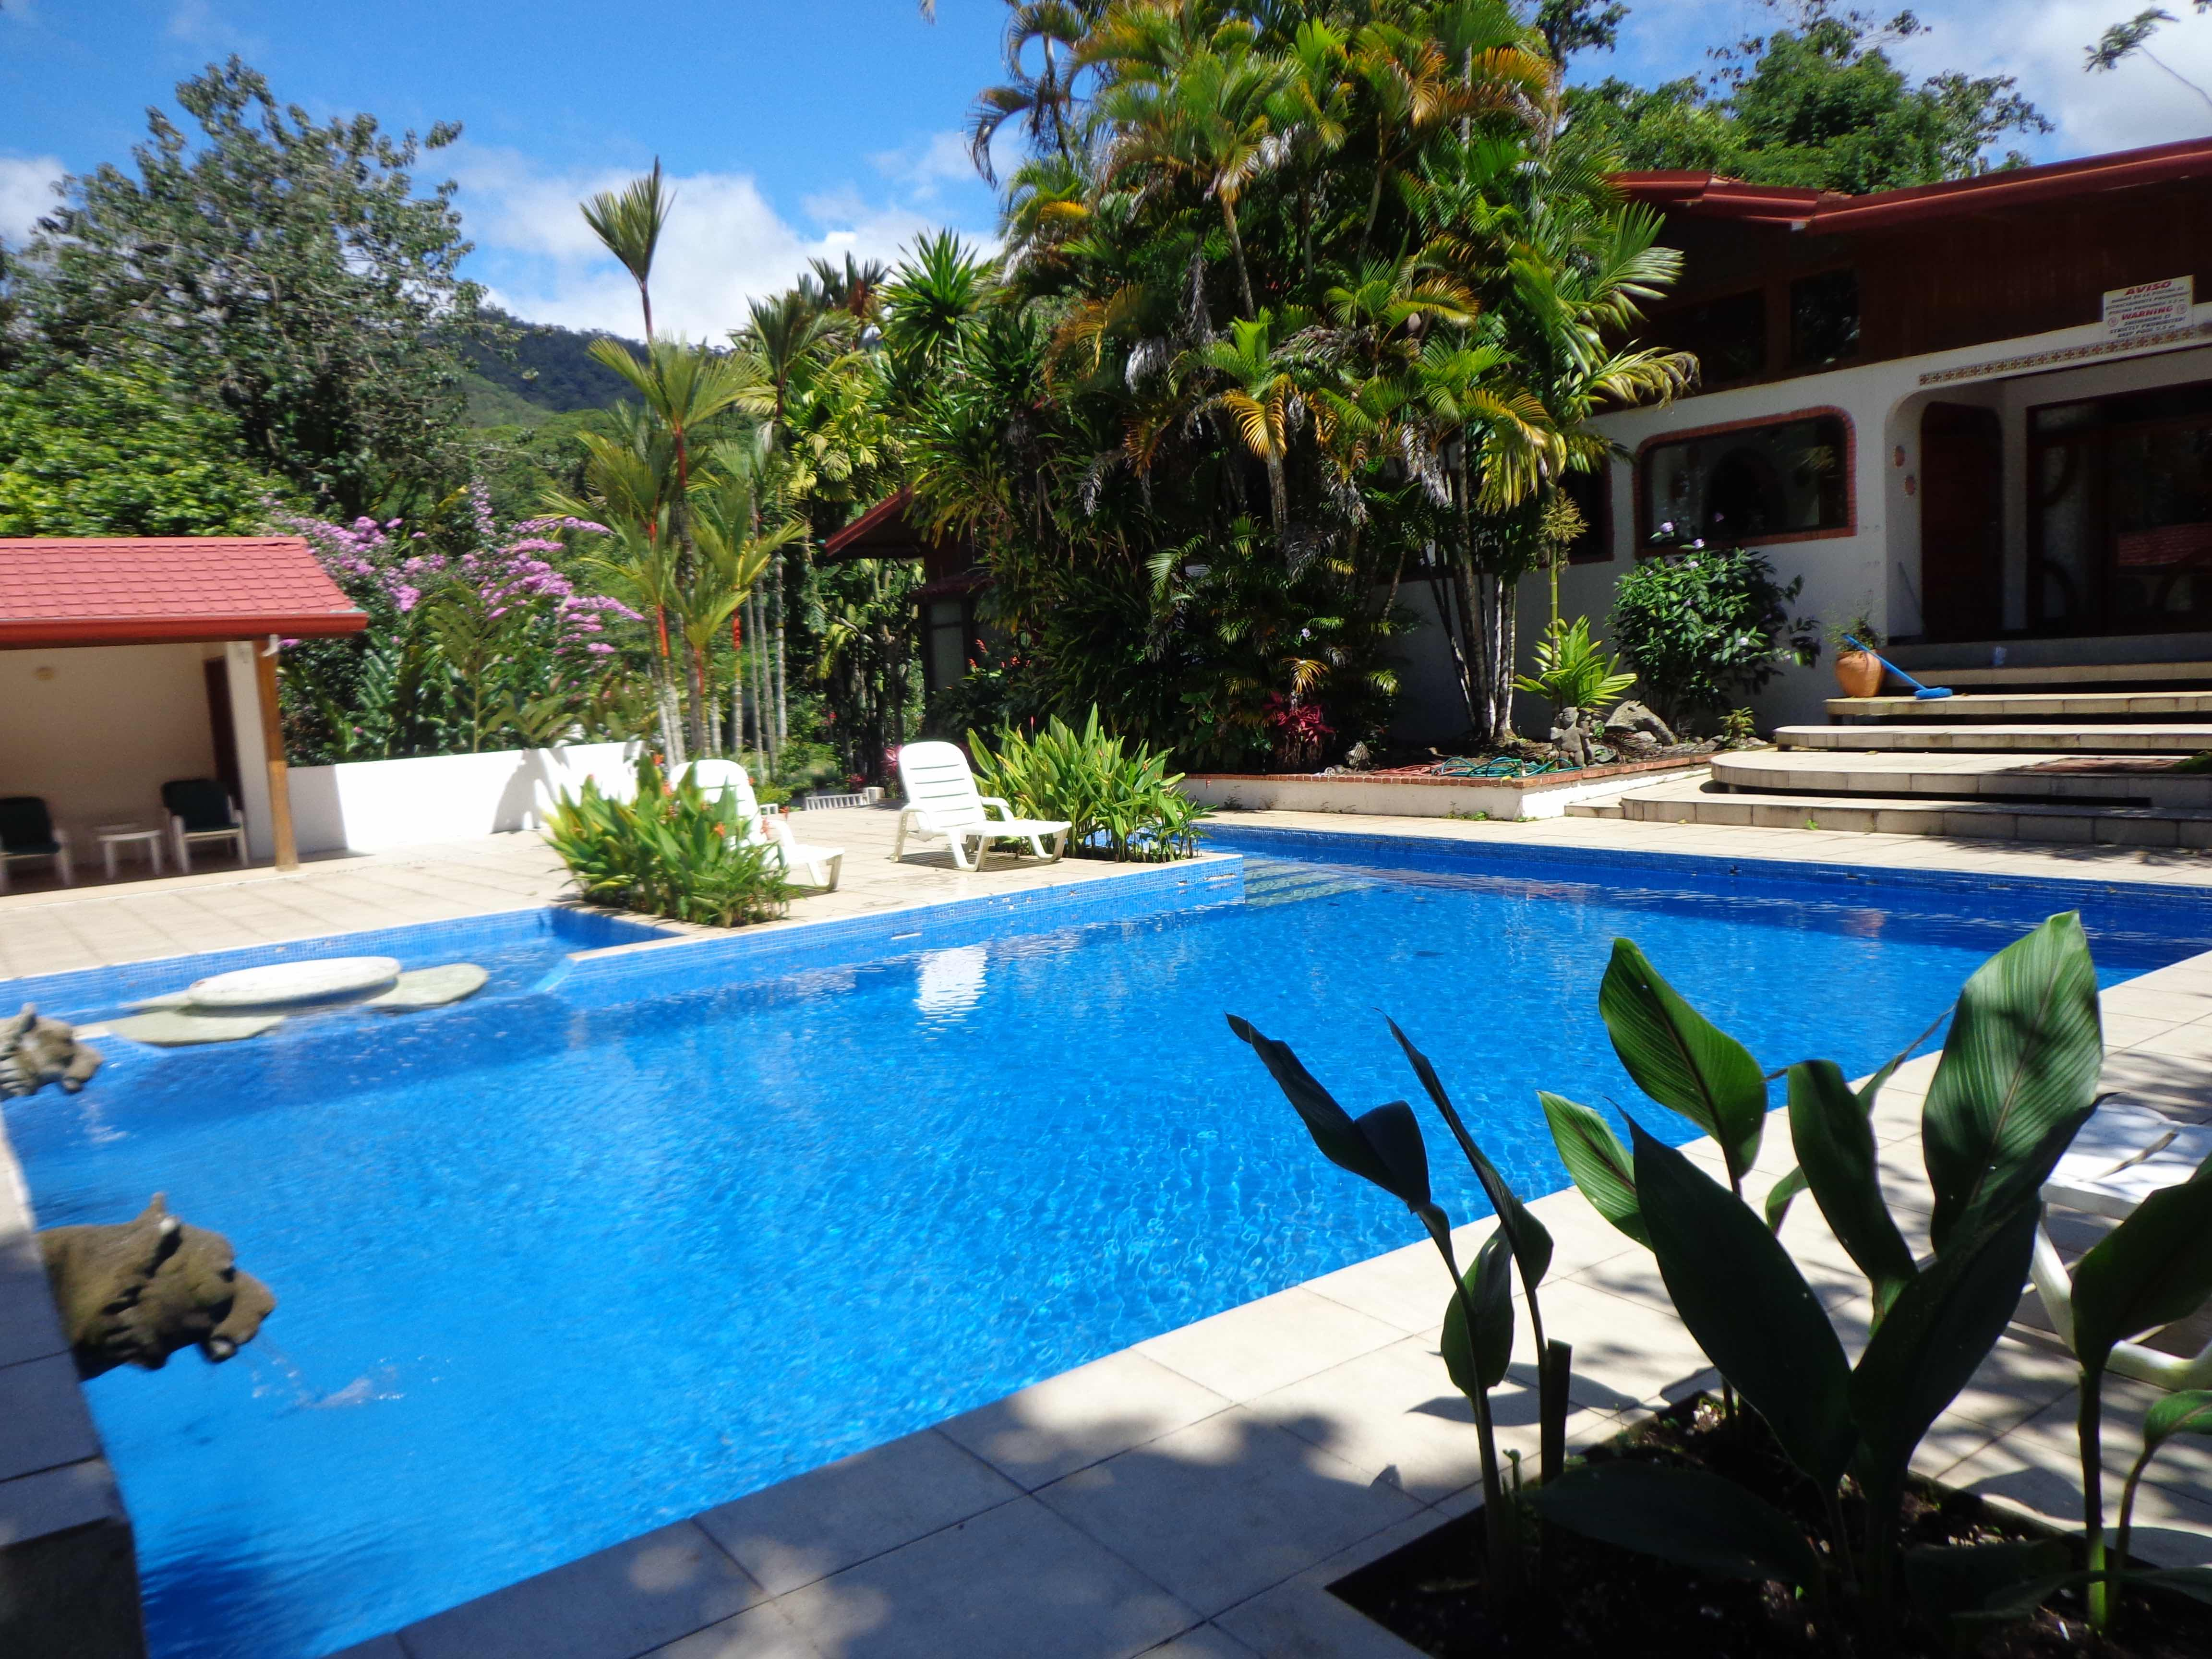 Property nestled in a paradise of tropical gardens